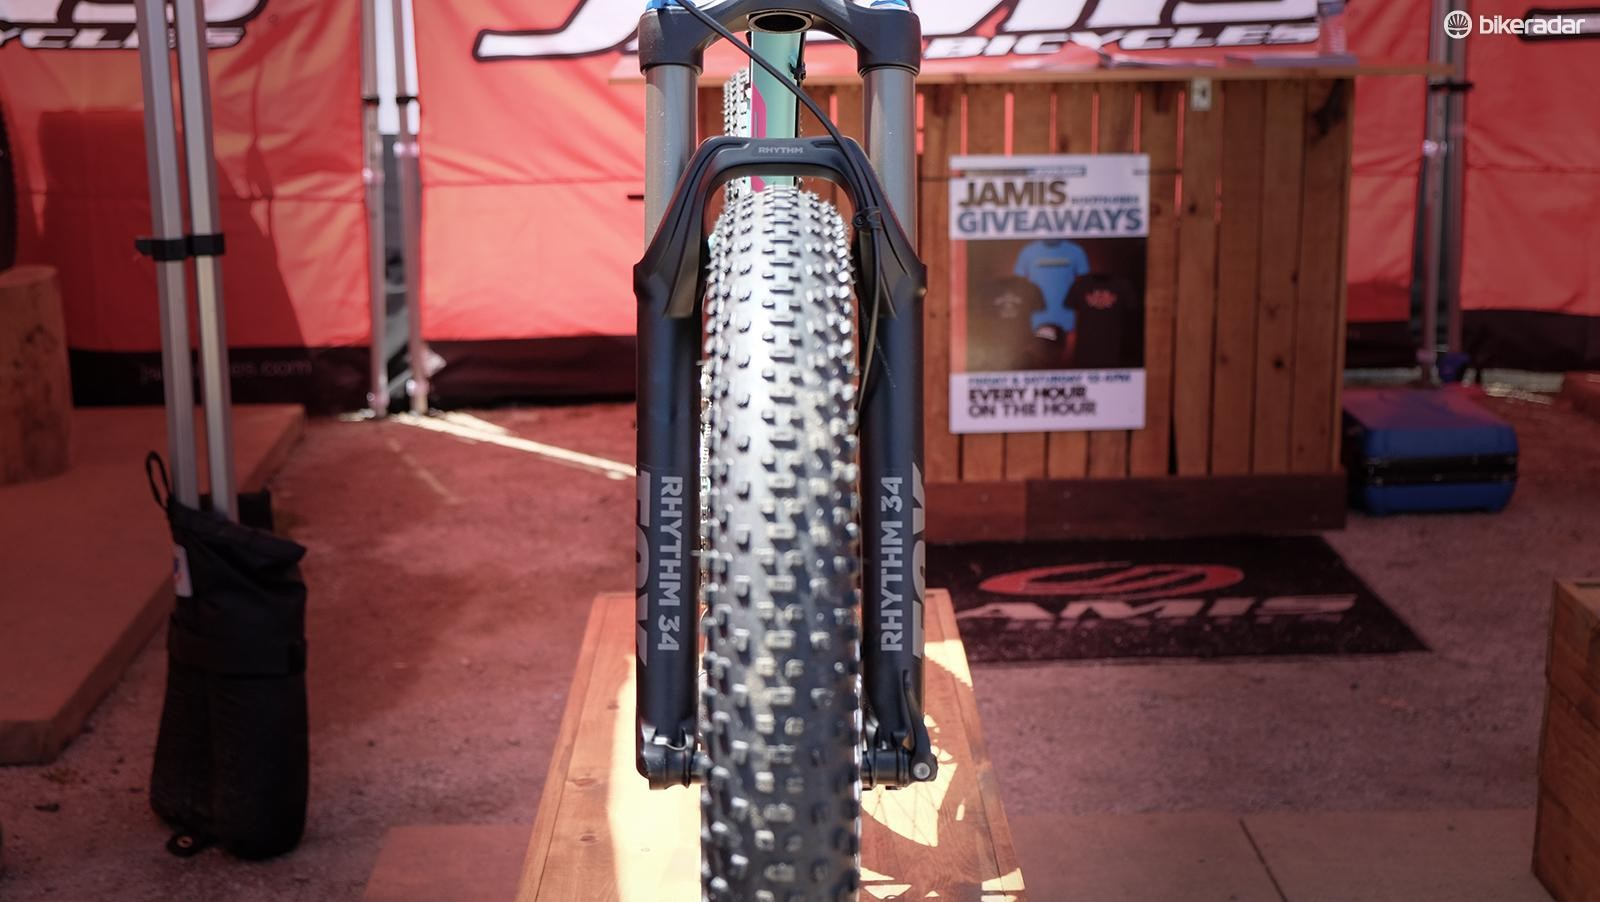 26x3in tires fit well in existing 27.5in suspension forks and many 27.5 frames